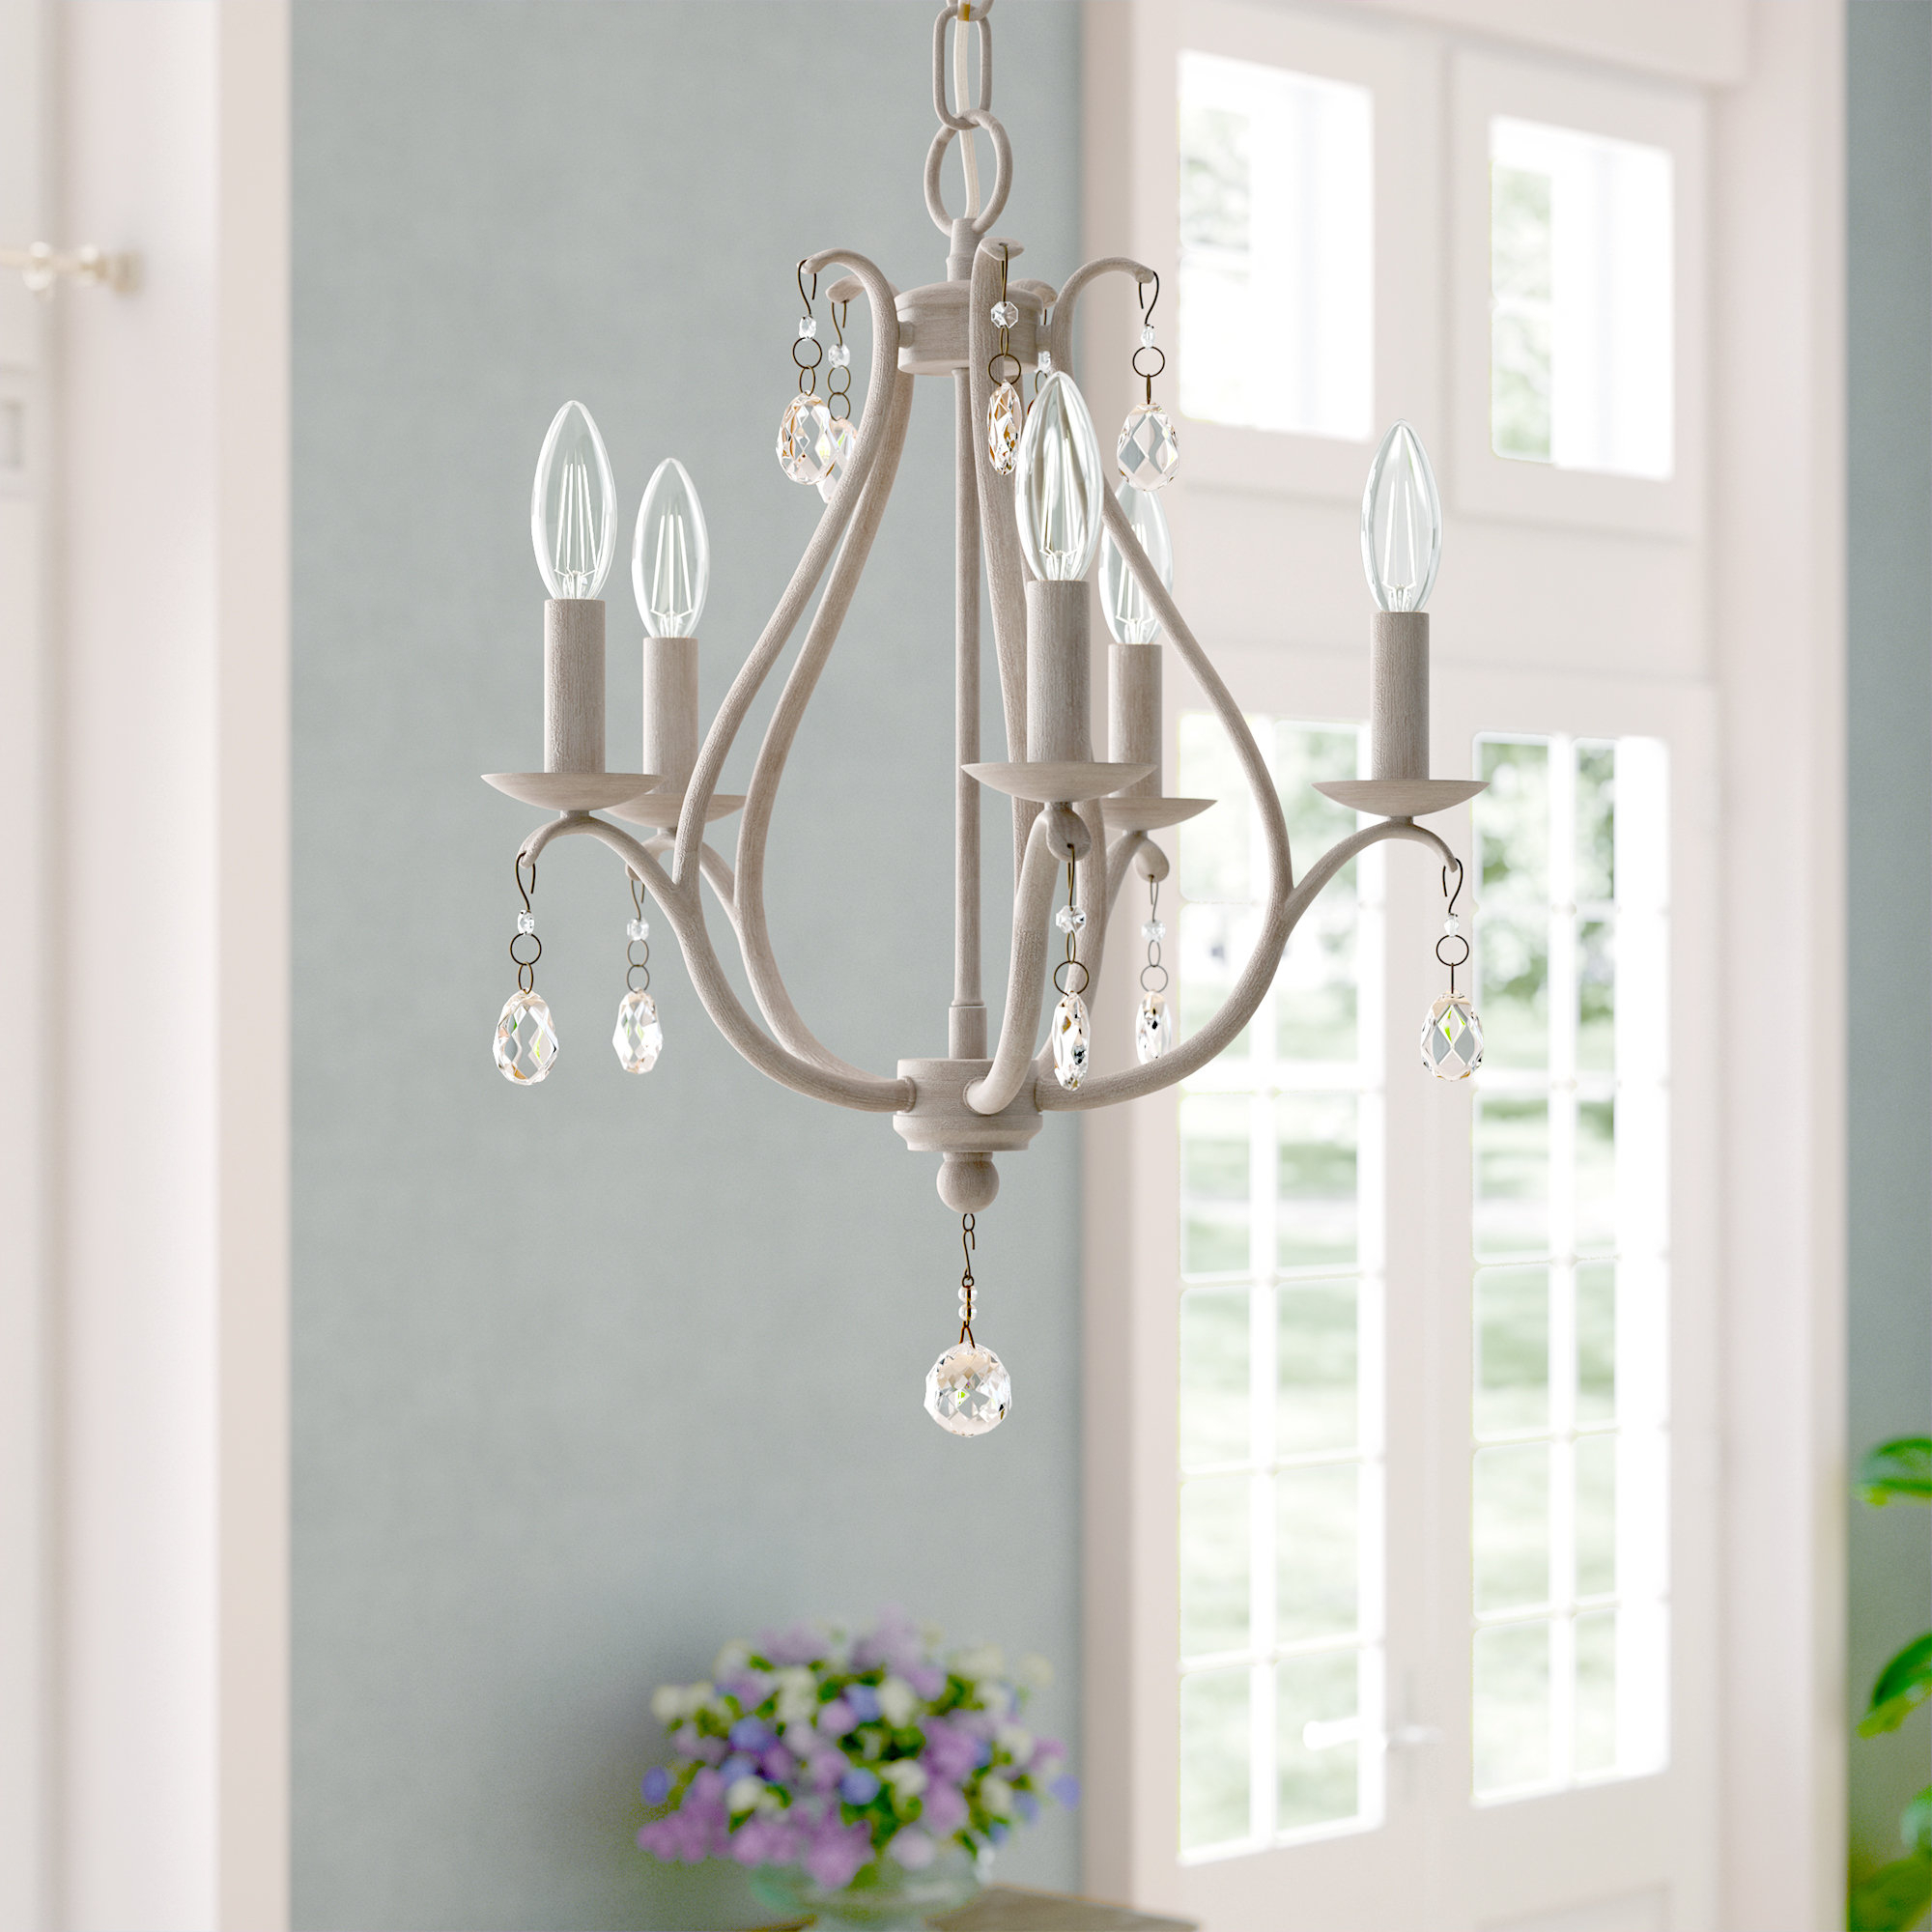 Most Recently Released Palumbo 5 Light Candle Style Chandelier Regarding Florentina 5 Light Candle Style Chandeliers (Gallery 8 of 20)